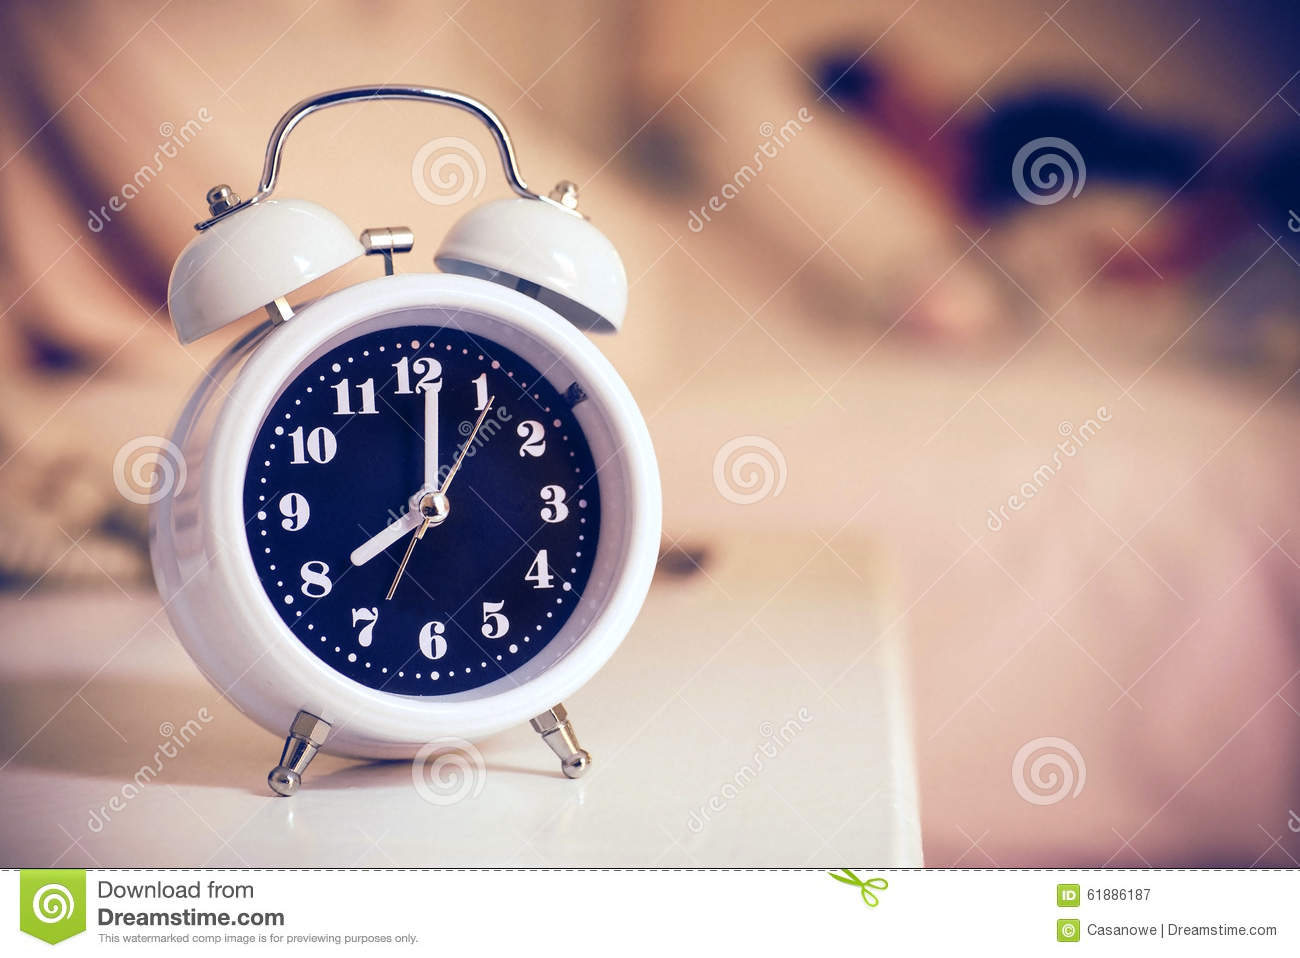 Alarm Clock On The Bed In Bedroom, Retro Style Stock Image